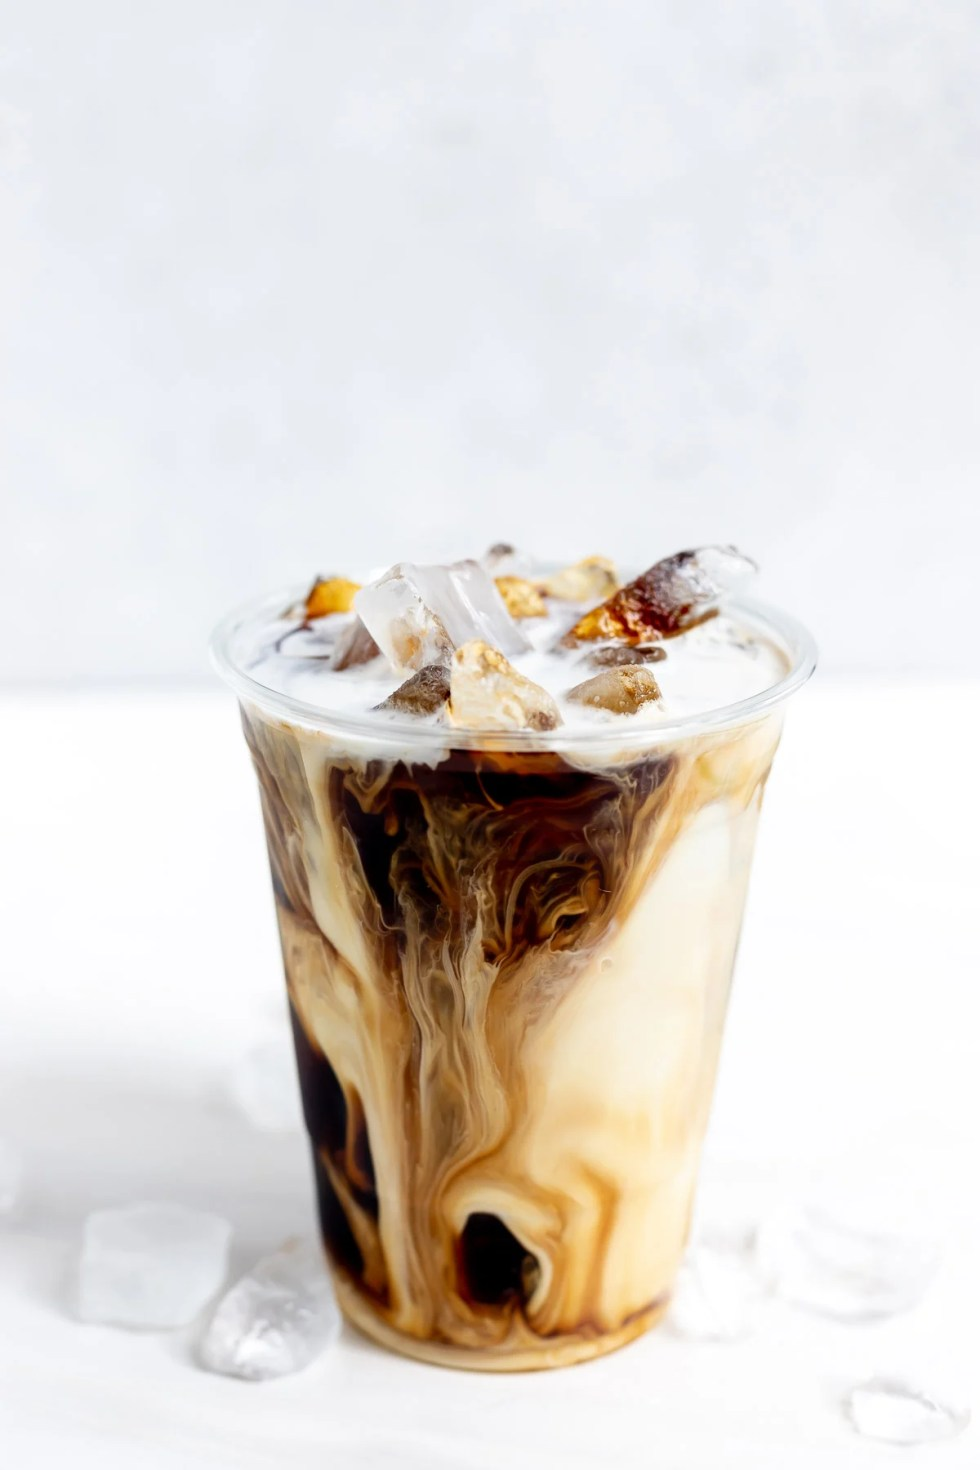 creamy coffee and ice in clear plastic cup